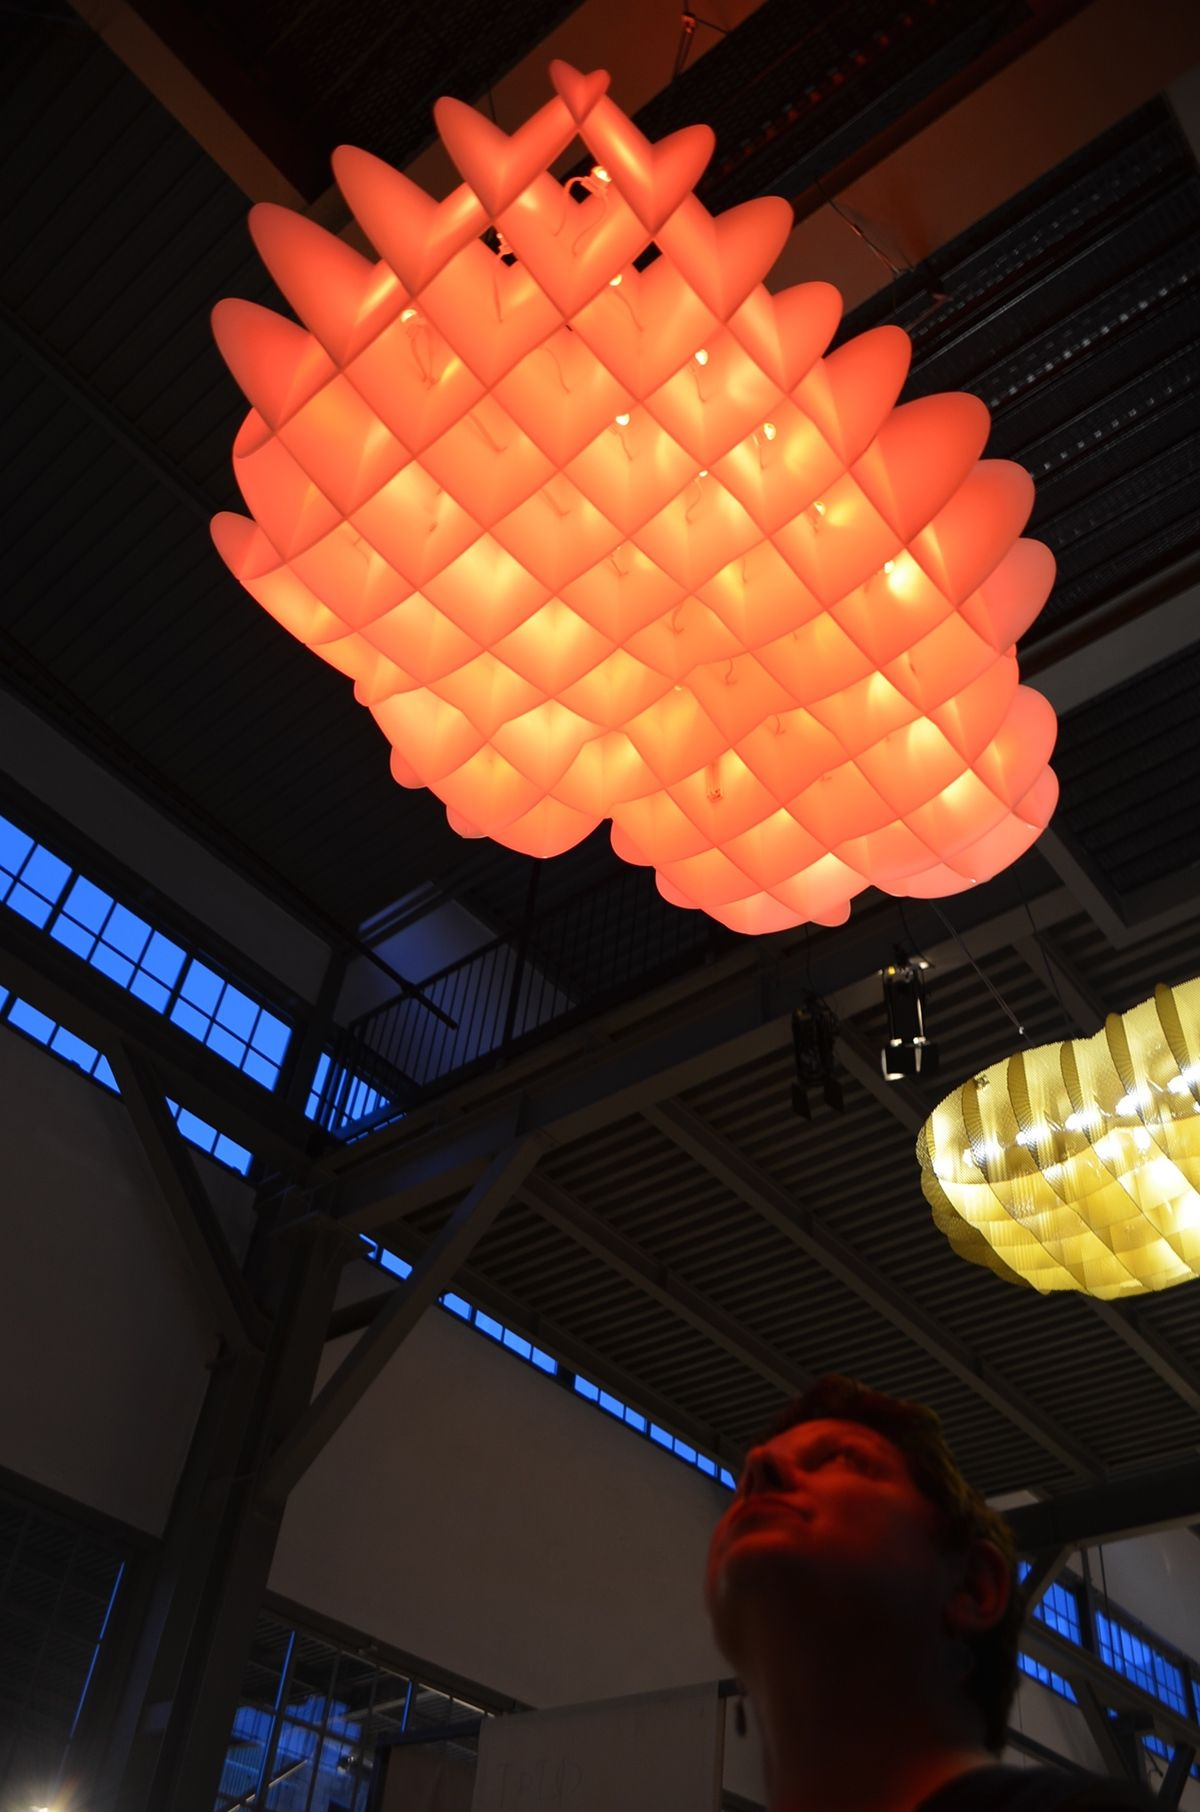 Exhibited: Milan Salone de mobile, Ventura Lambrate 2015.   Suspended pendant collection exhibited features an array of 25 individually addressable LEDs embedded into the structure. The LEDs are capable of being programmed to have interesting storm effects and coloured effects of sunrise and sunset. Each light fixture is a lightweight construction made of interlocking pieces which can be disassembled and flat packed for transportation. Individually each   Size: 1 meter x 600mm and will…